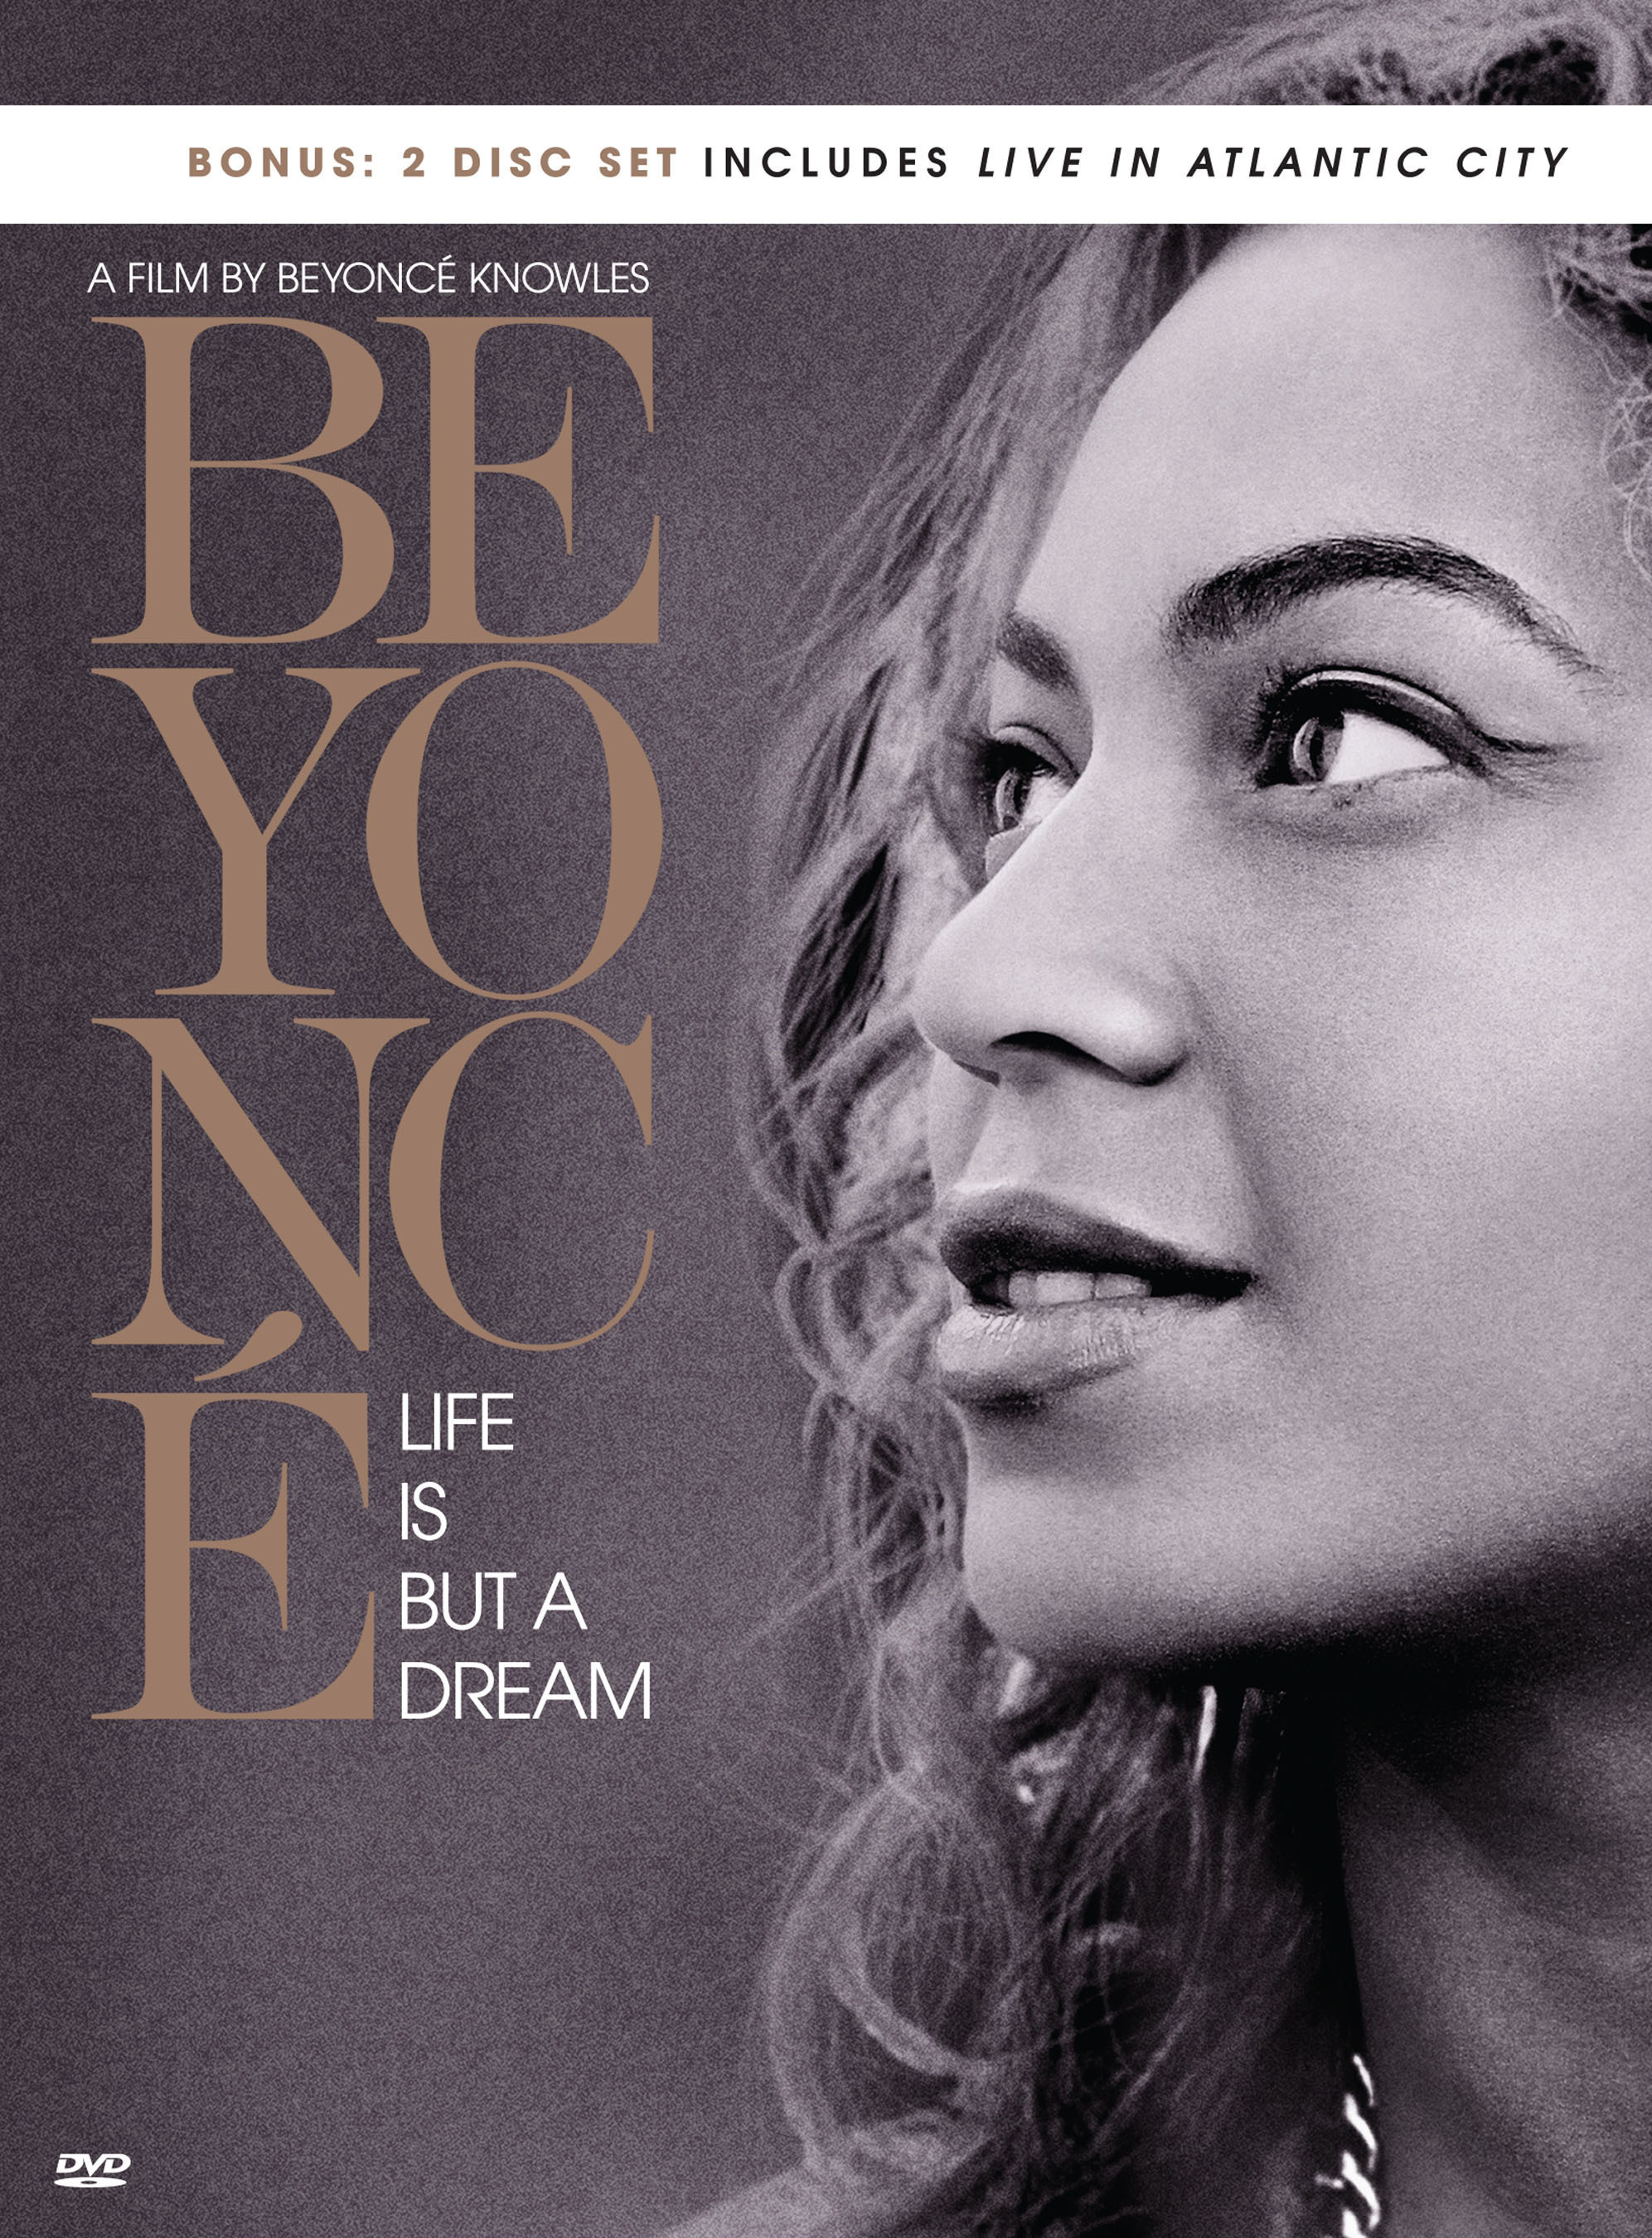 """""""BEYONCE - LIFE IS BUT A DREAM"""" 2 DISC DVD SET Available Everywhere November 25. (PRNewsFoto/Parkwood Entertainment/Columbia Records) (PRNewsFoto/PARKWOOD ENTERTAINMENT...)"""